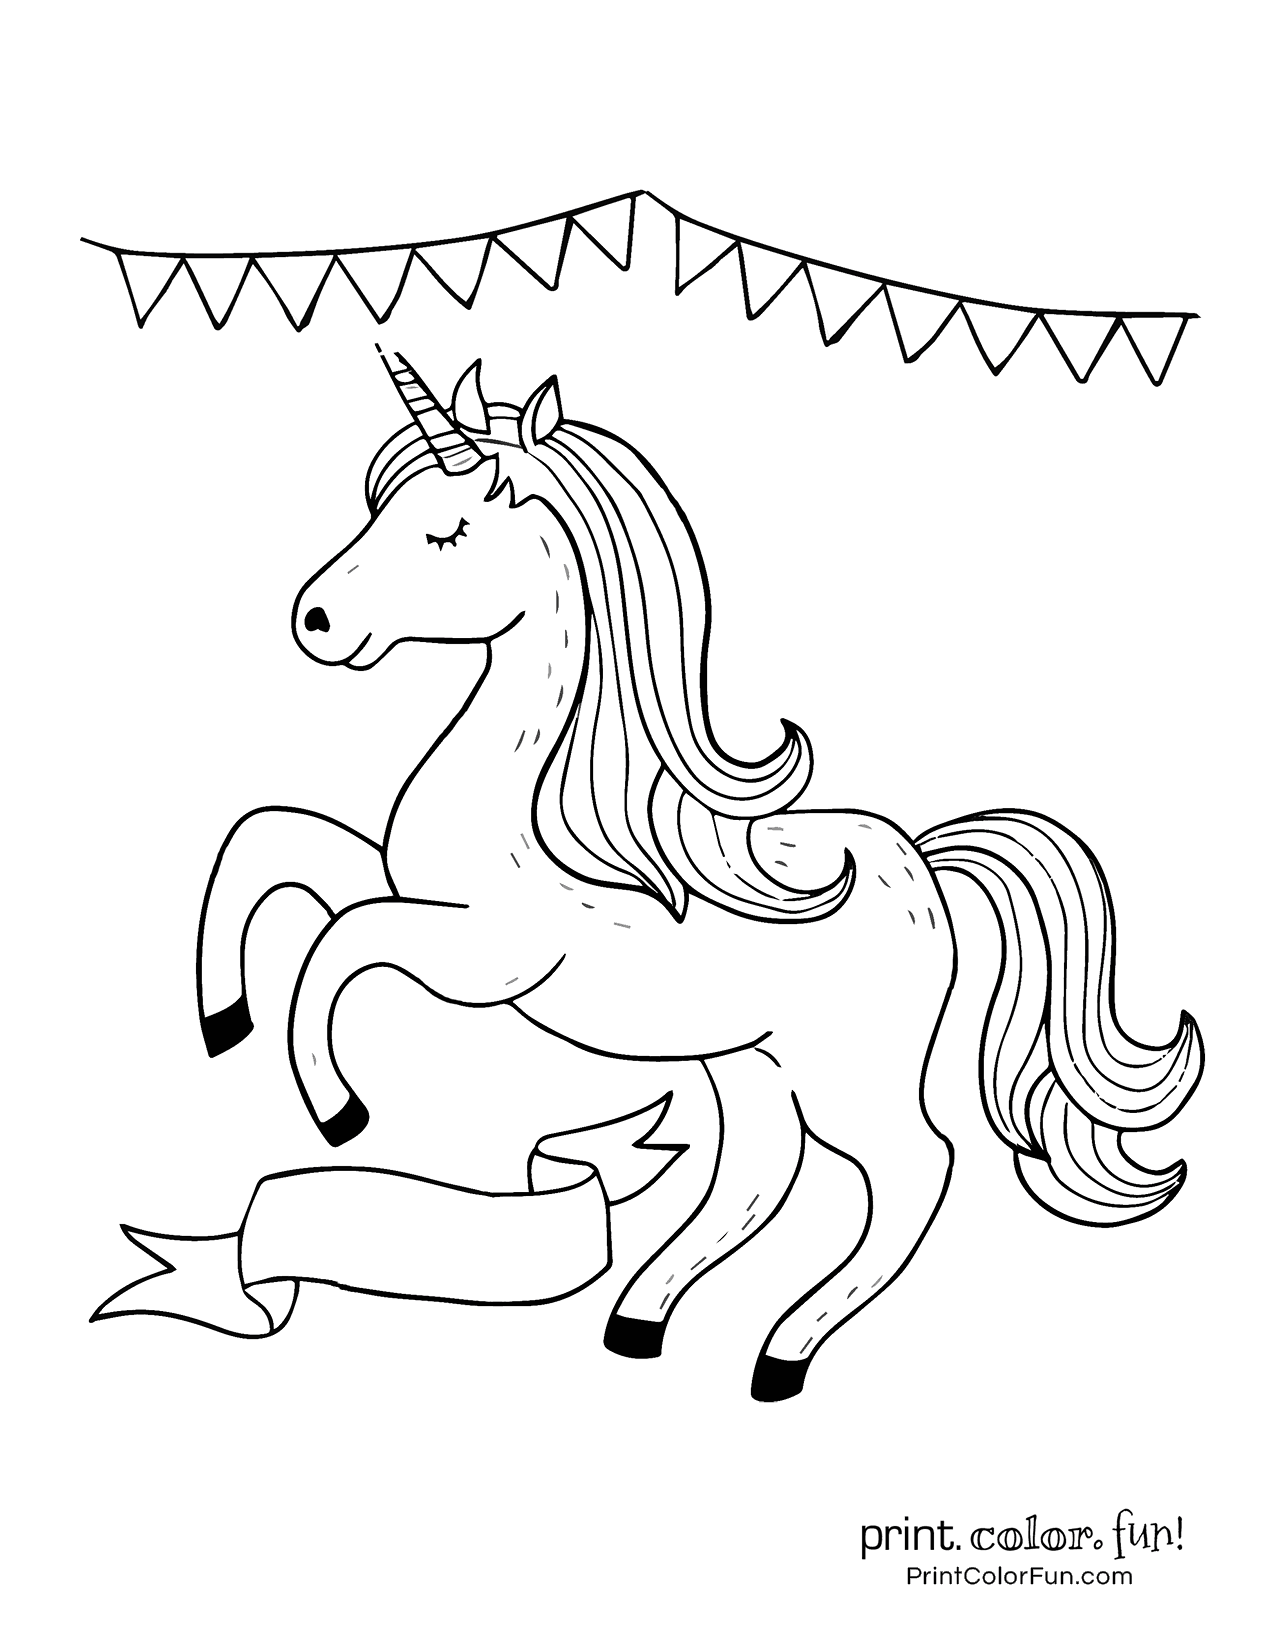 Unicorn Cute Coloring Pages : unicorn, coloring, pages, Magical, Unicorn, Coloring, Pages:, Ultimate, (free!), Printable, Collection,, Print, Color, Fun.…, Pages,, Mermaid, Pages